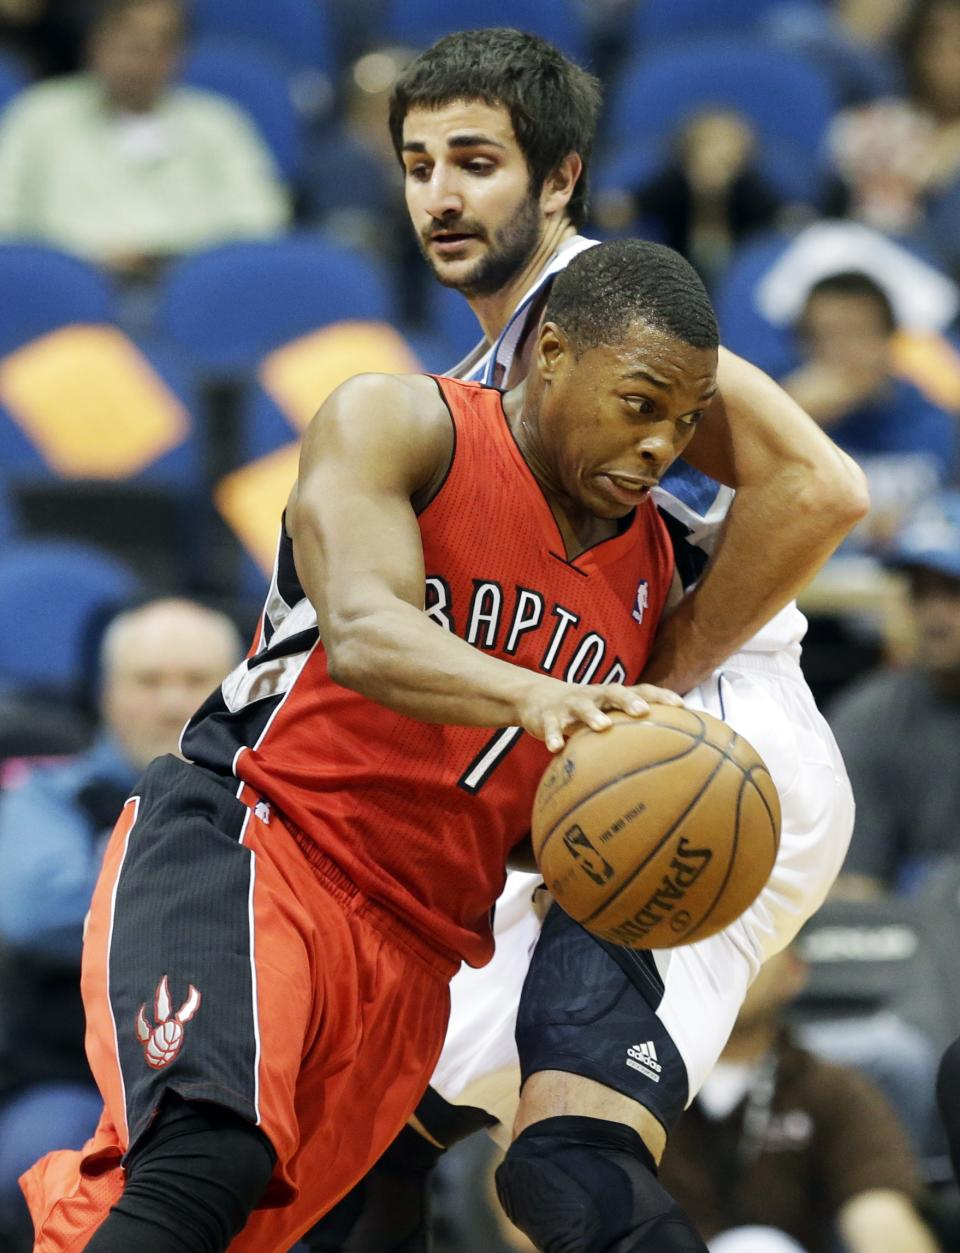 Raptors win foul fest over Timberwolves, 104-97